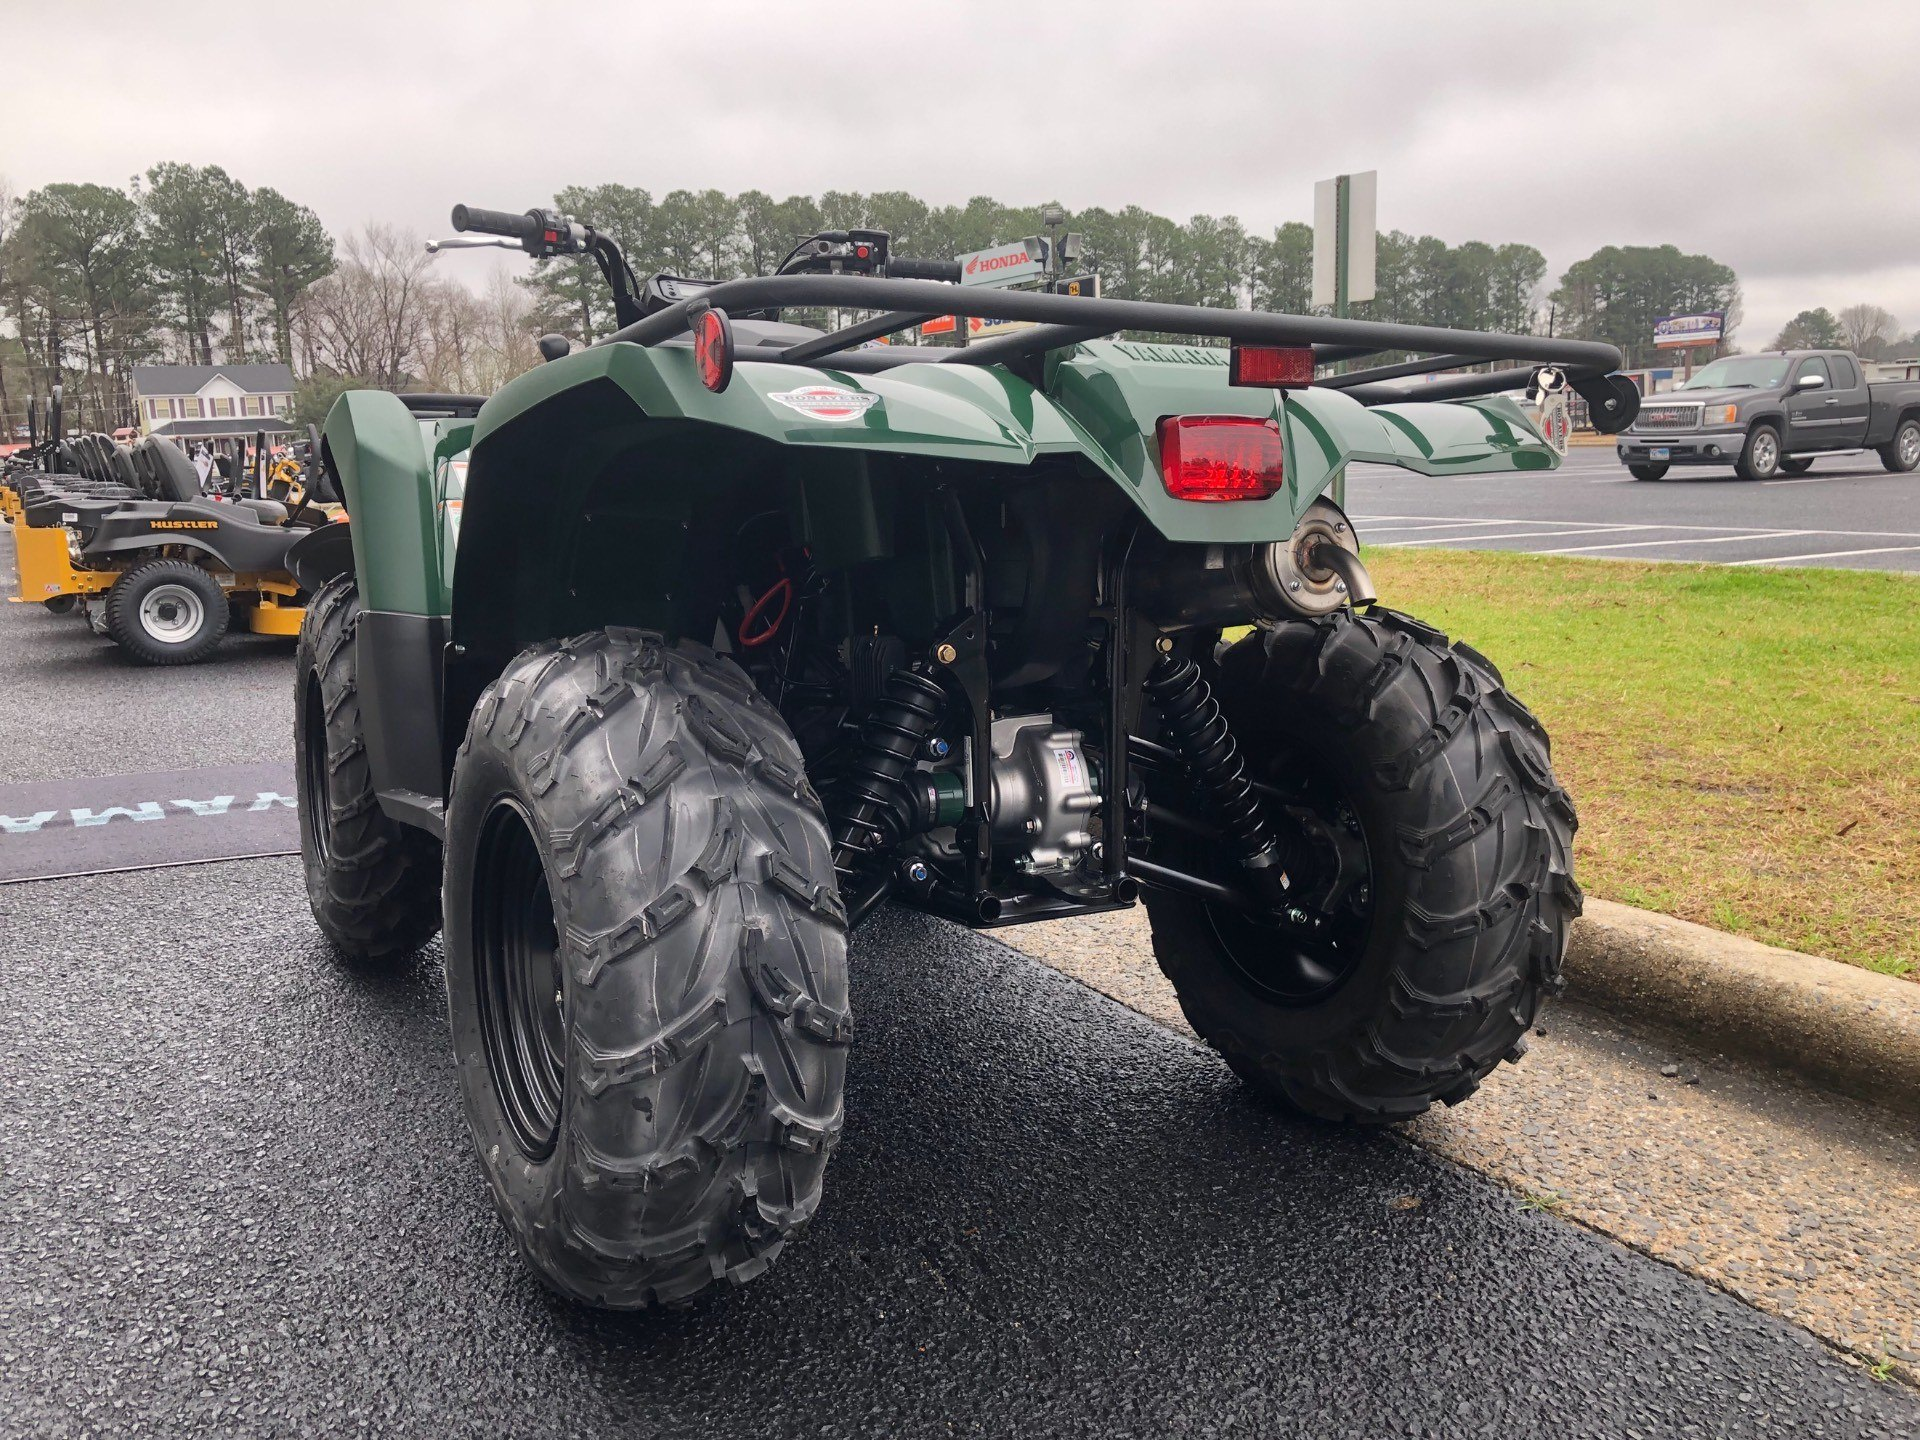 2019 Yamaha Kodiak 450 in Greenville, North Carolina - Photo 11